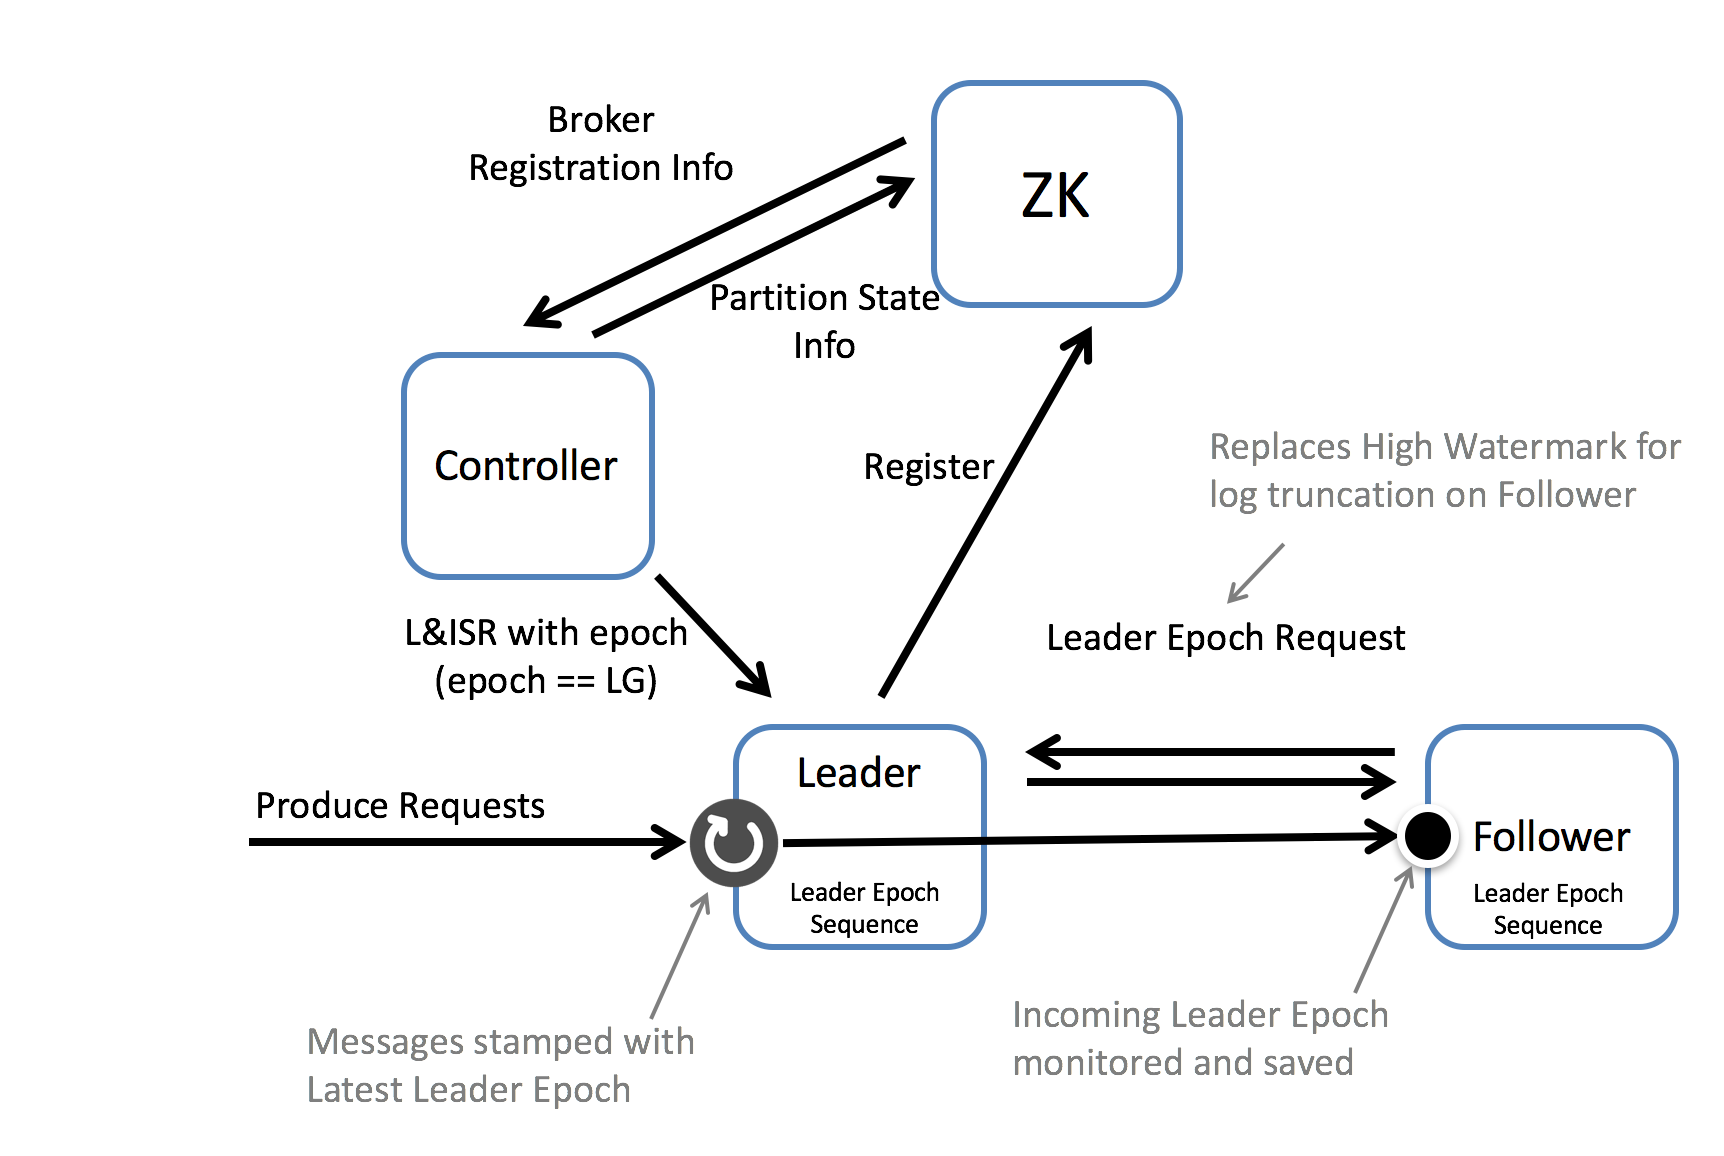 KIP-101 - Alter Replication Protocol to use Leader Epoch rather than